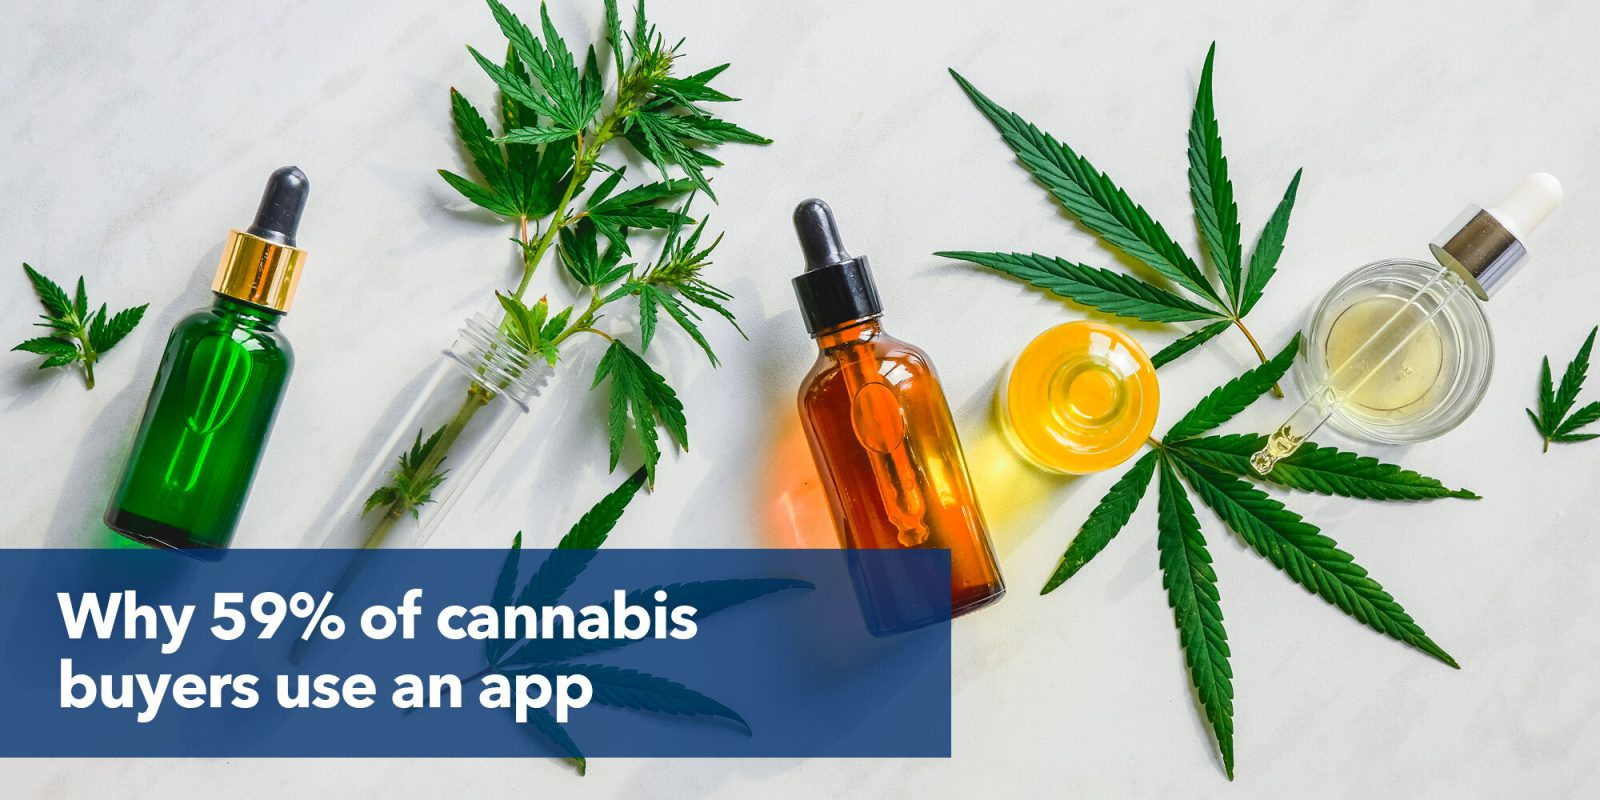 Why 59% of cannabis buyers use an app.